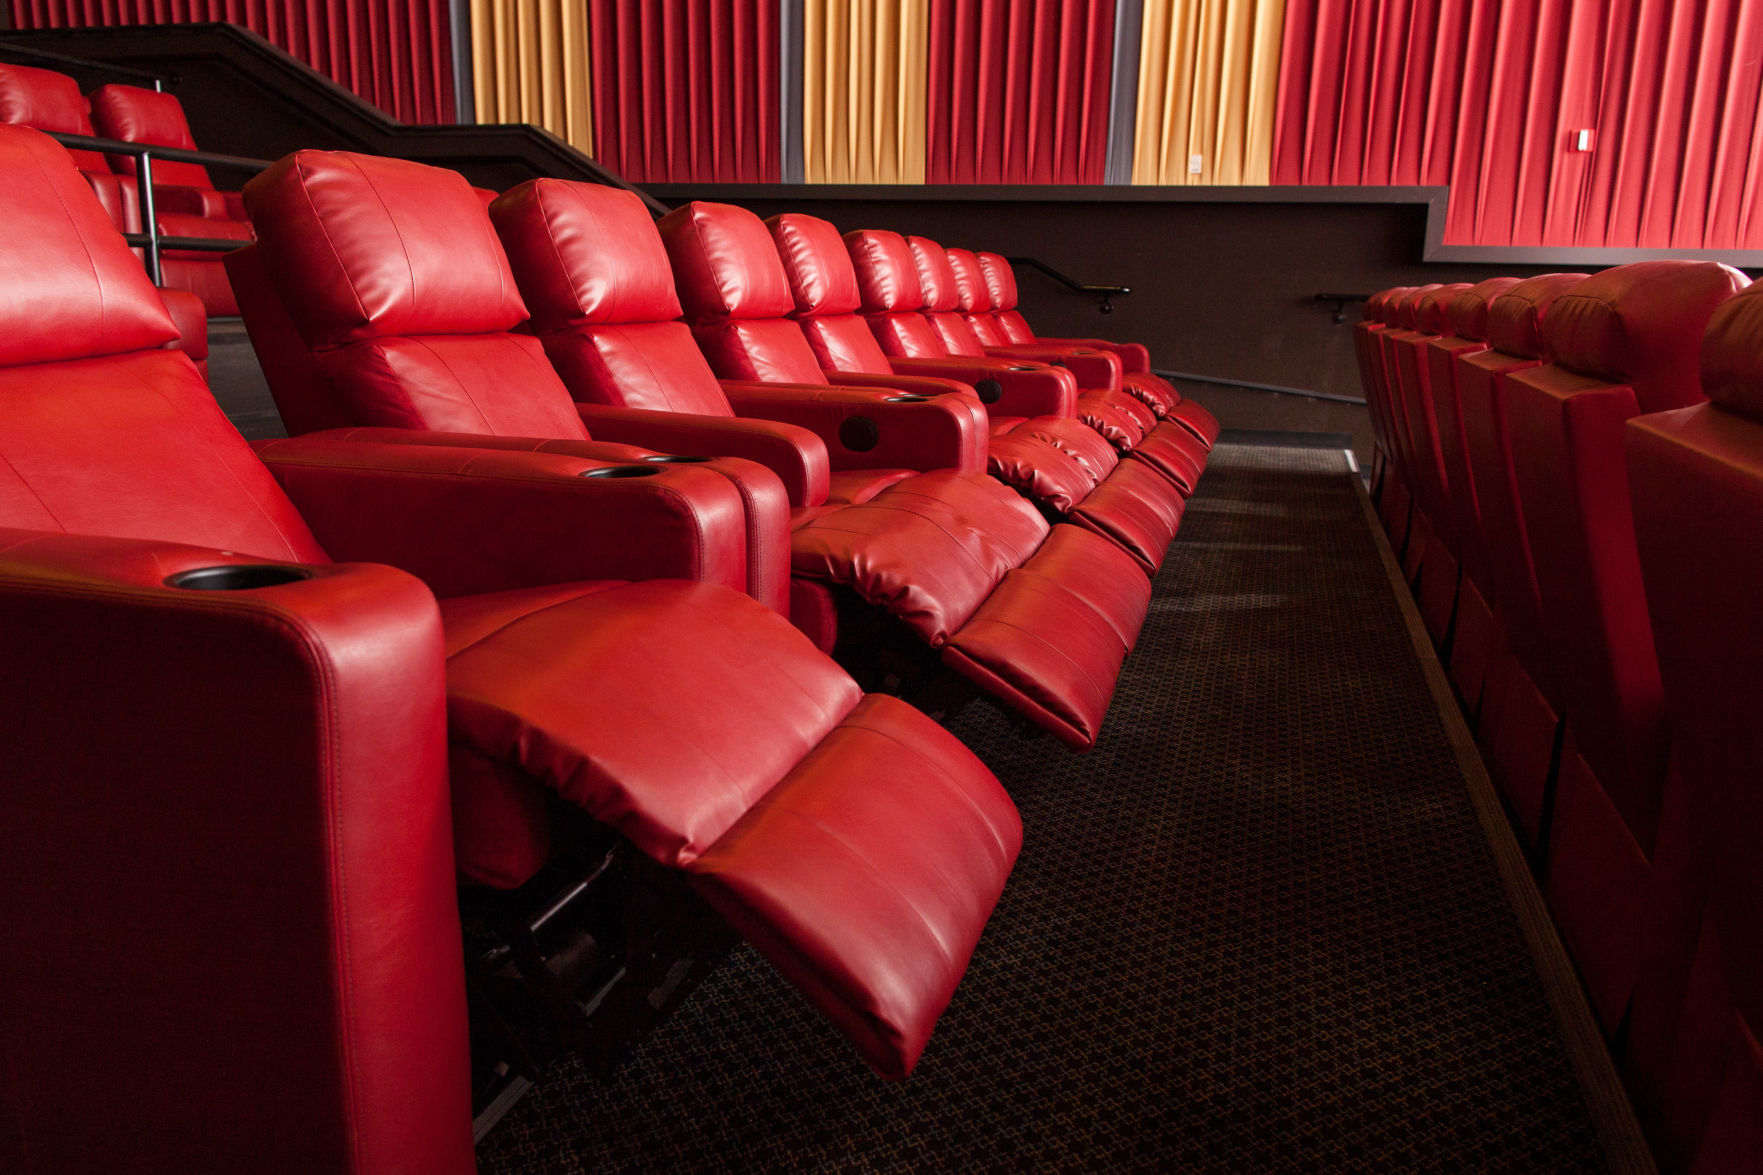 Marcus Wehrenberg theaters. & Heated recliners new screens better food coming to Marcus ... islam-shia.org